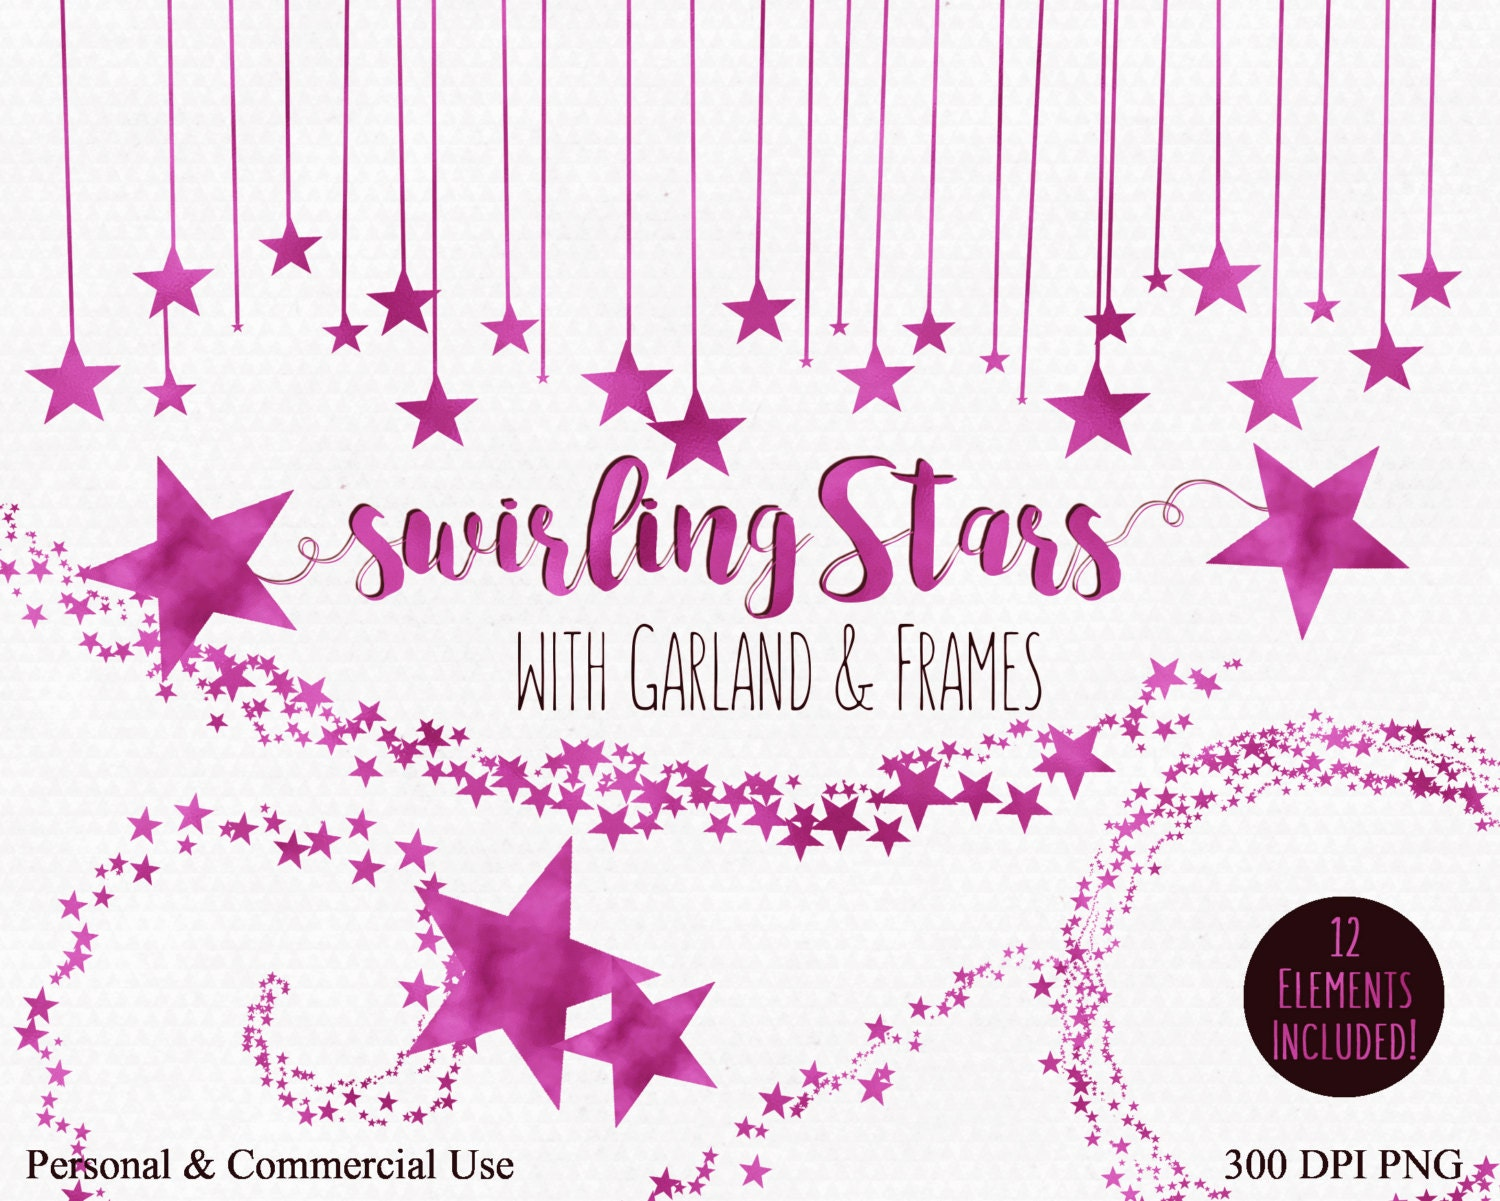 Hot pink star clipart commercial use clip art swirling